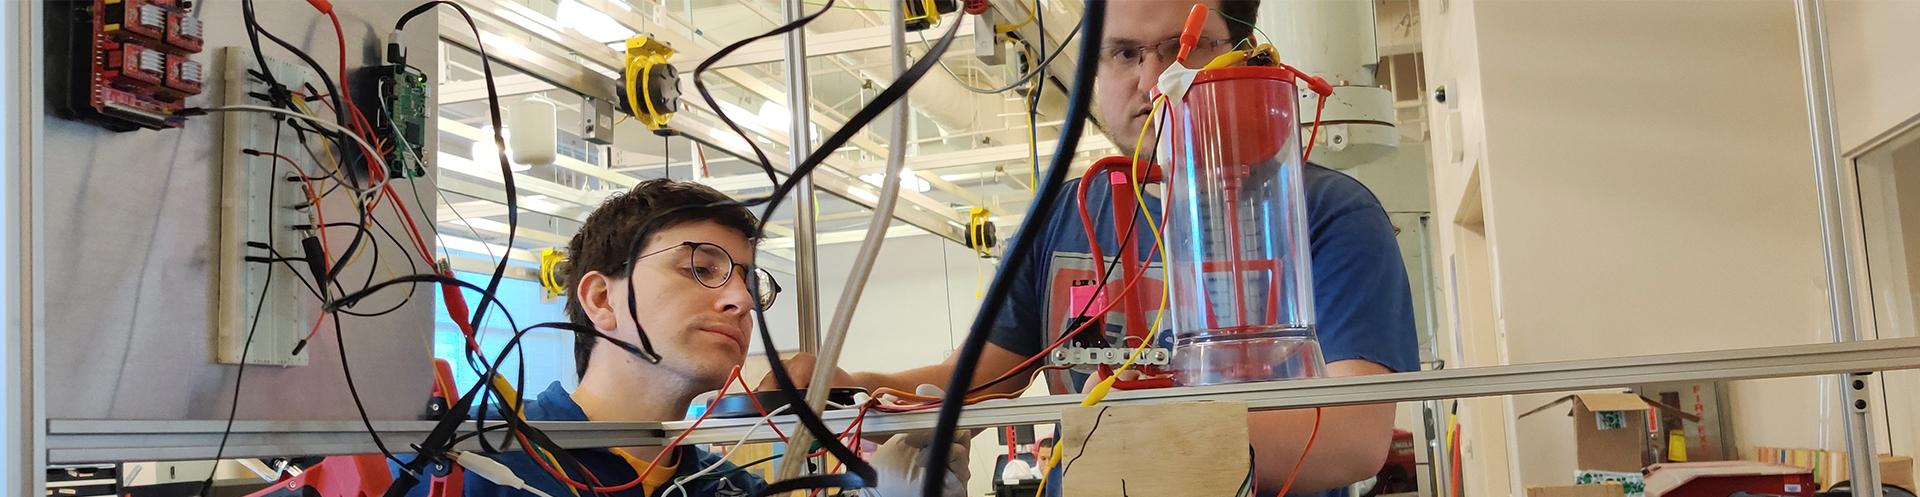 Mechatronics projects mesh creativity with engineering